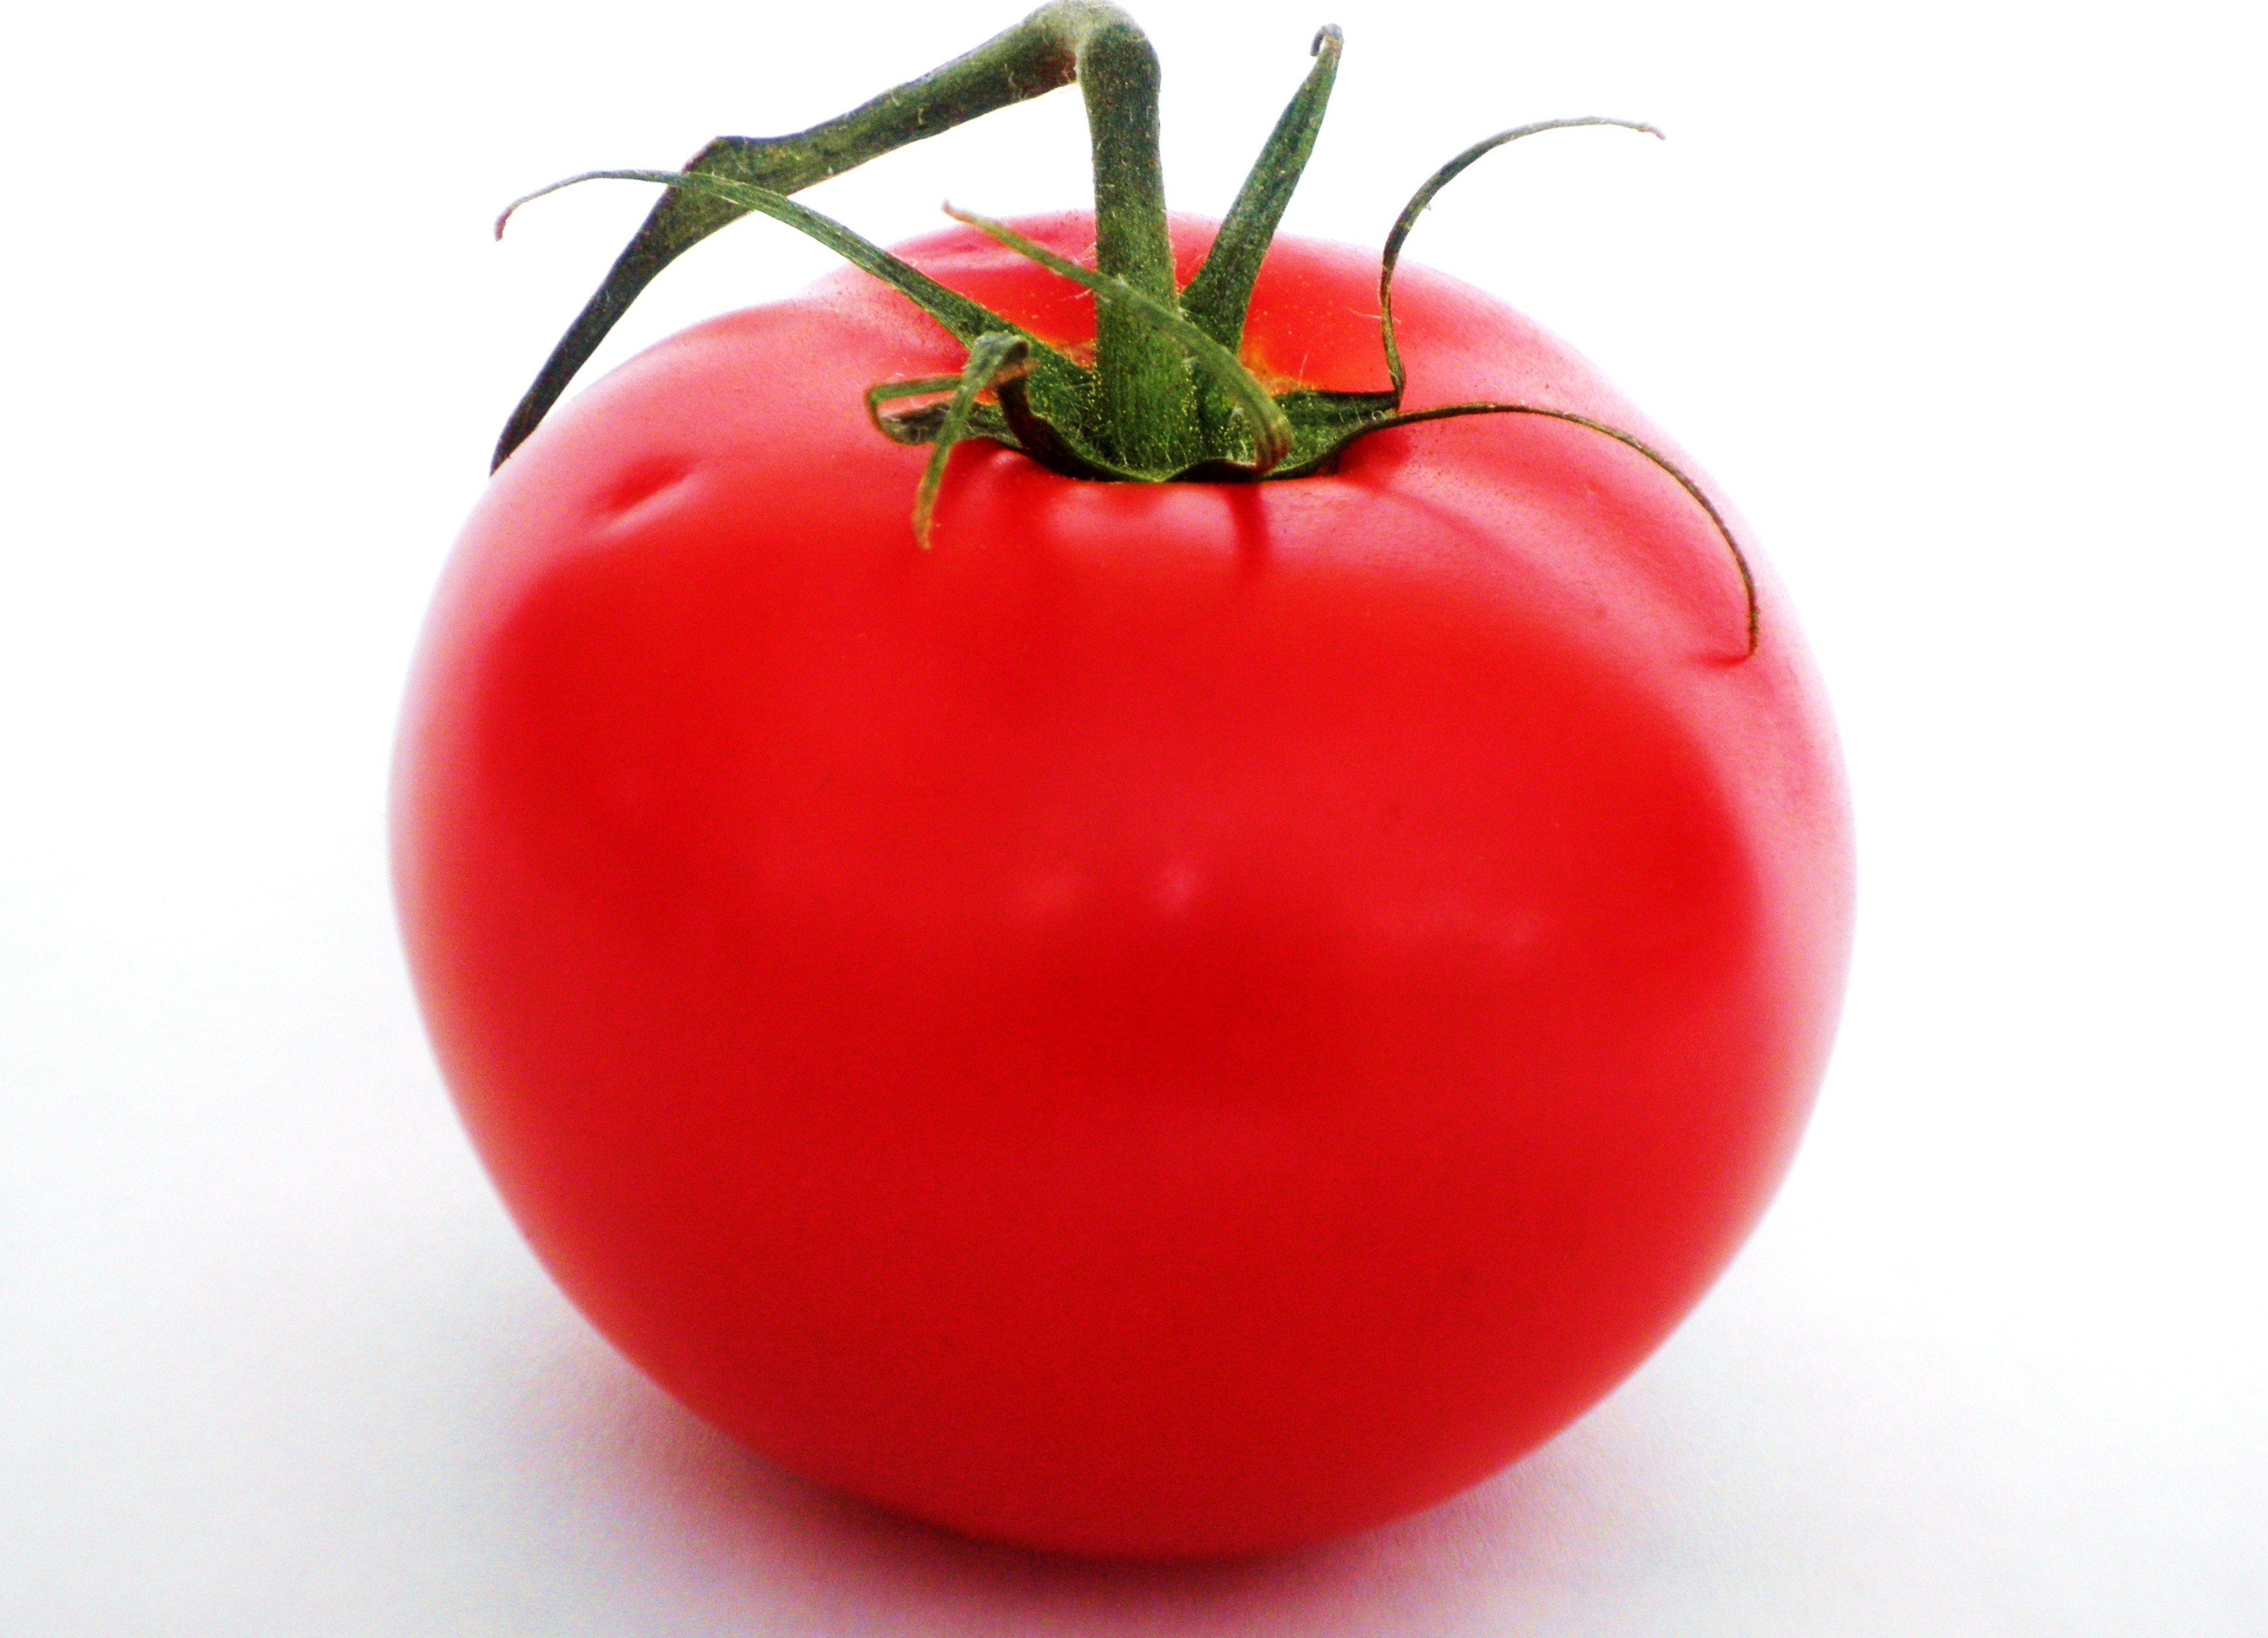 HD Tomato Wallpapers